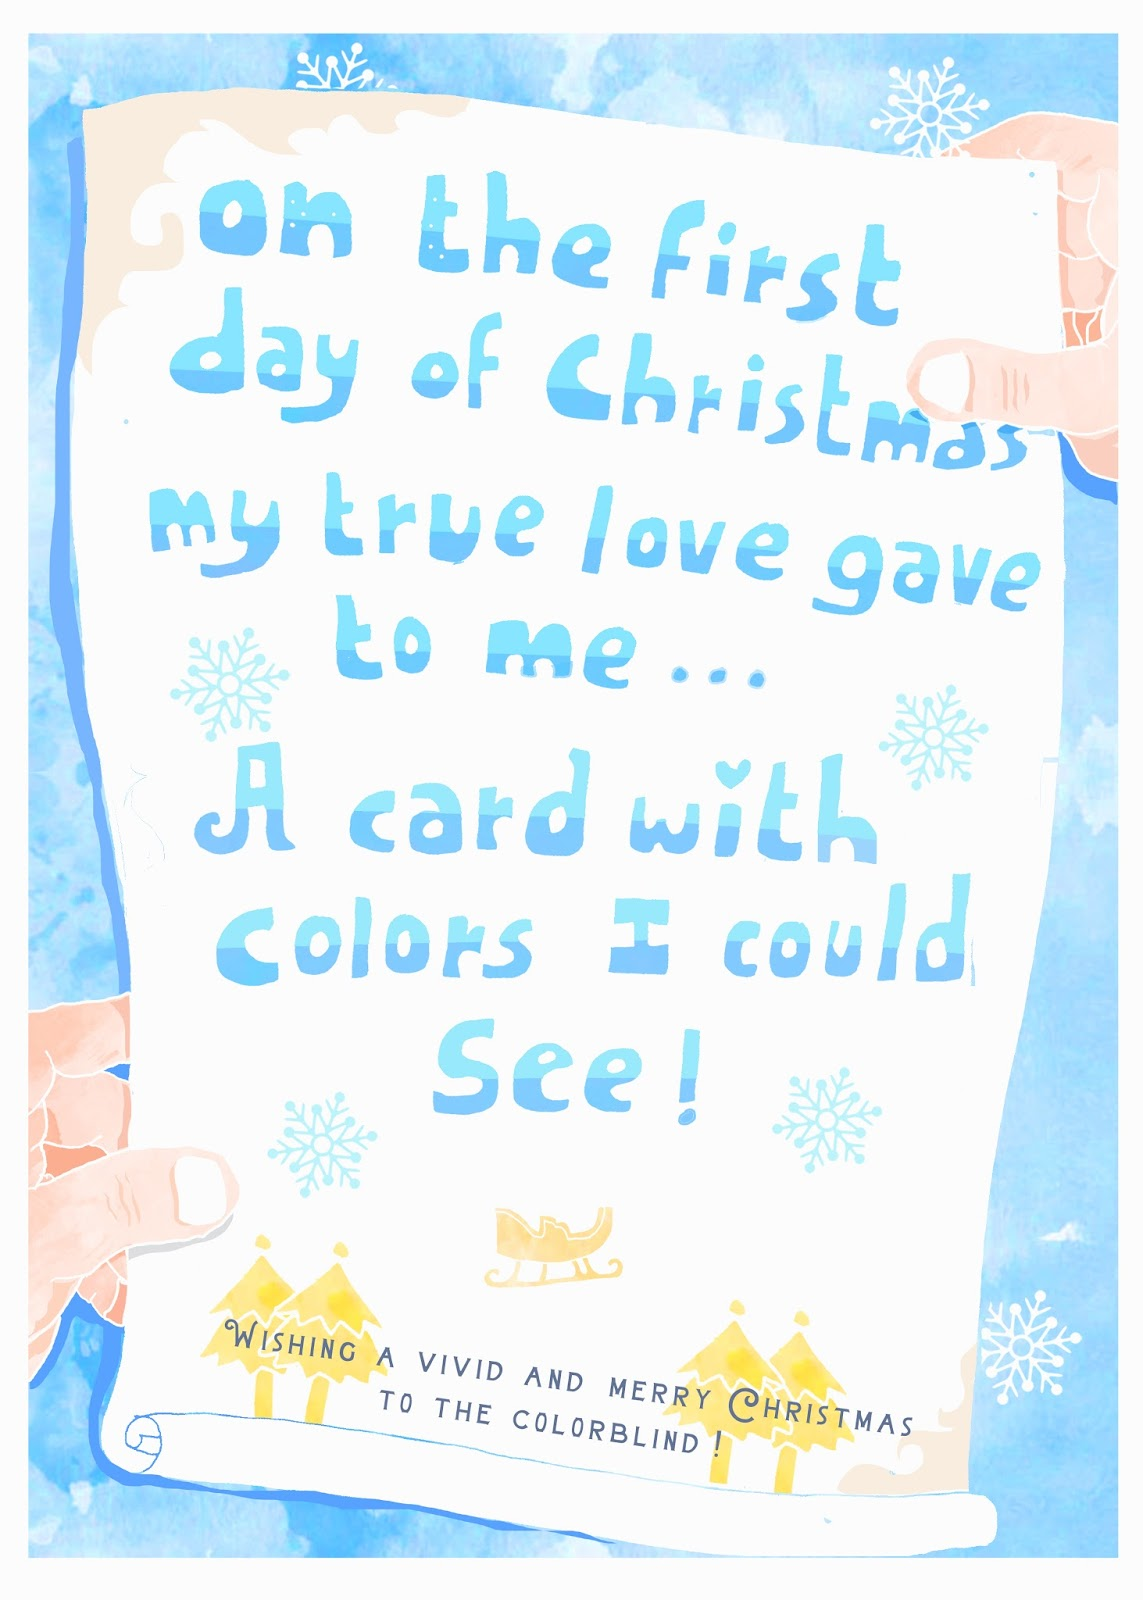 Advertising Creatives Rebrand Christmas for the Colorblind | AdStasher